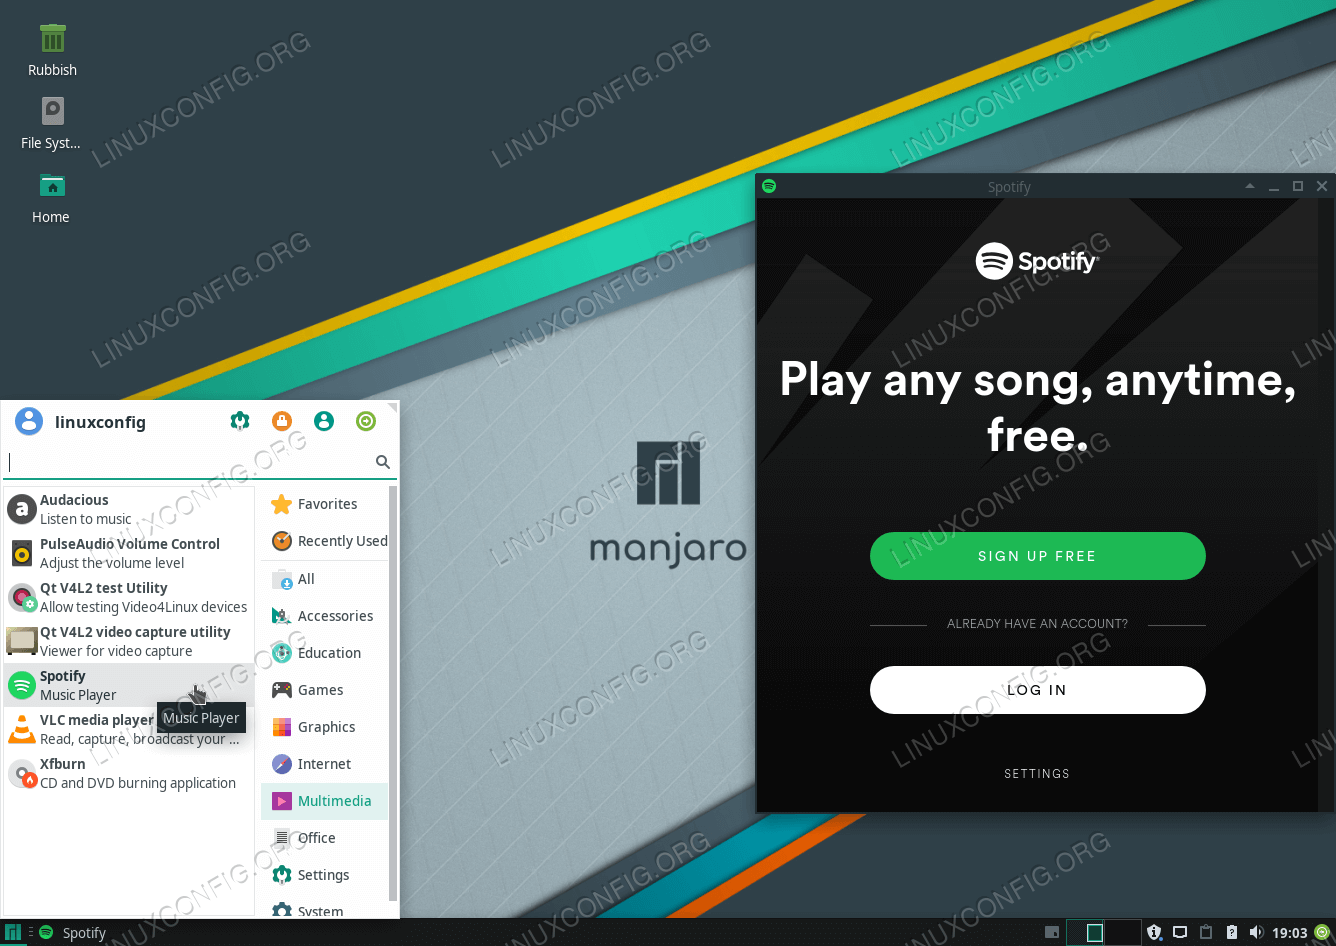 Installed Spotify on Manjaro 18 Linux